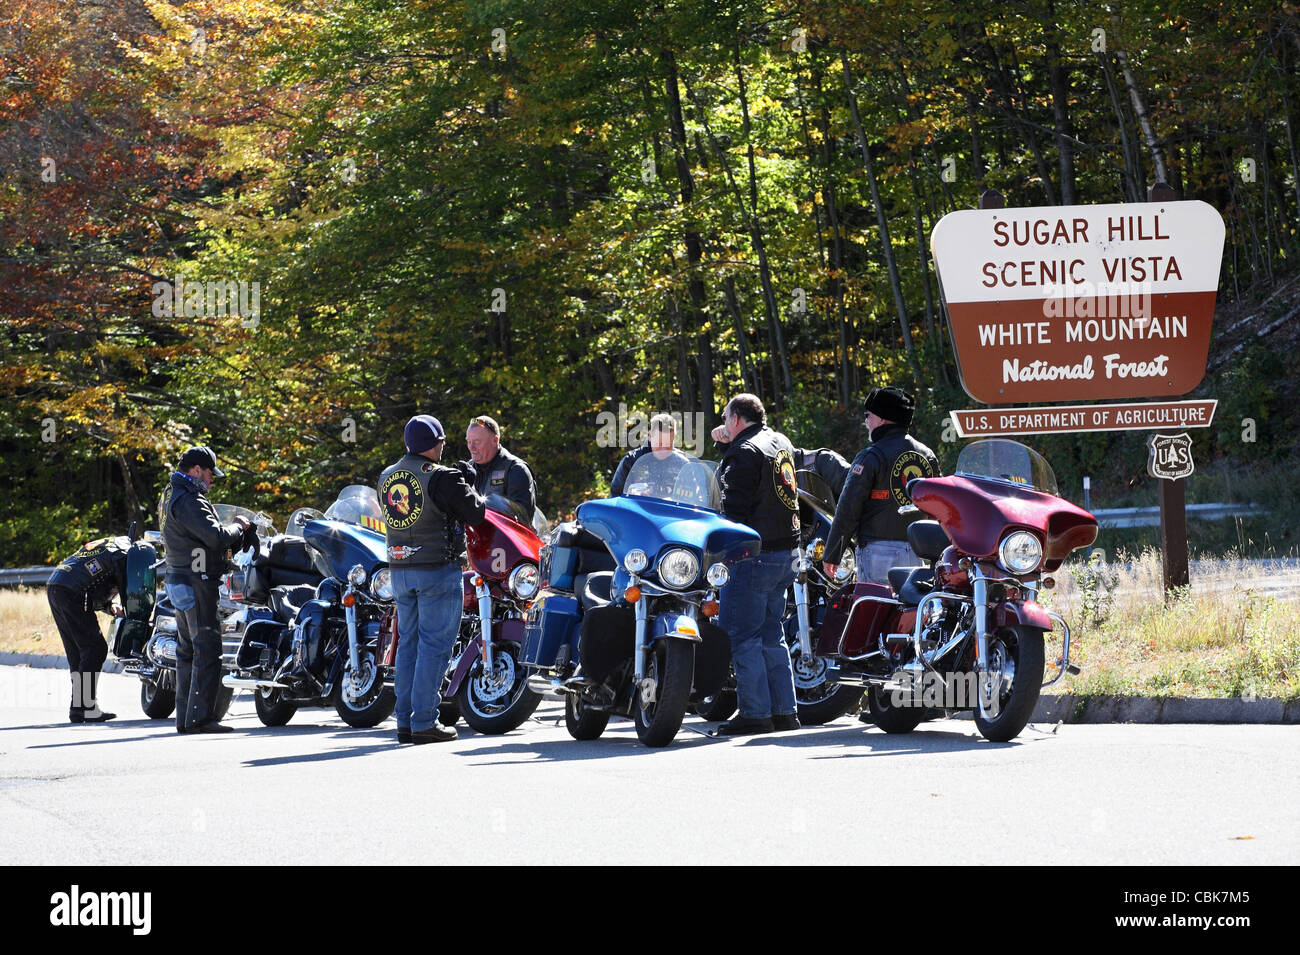 Members of the Combat Vets Association gather with their motorbikes at Sugar Hill, White Mountain, New Hampshire, - Stock Image